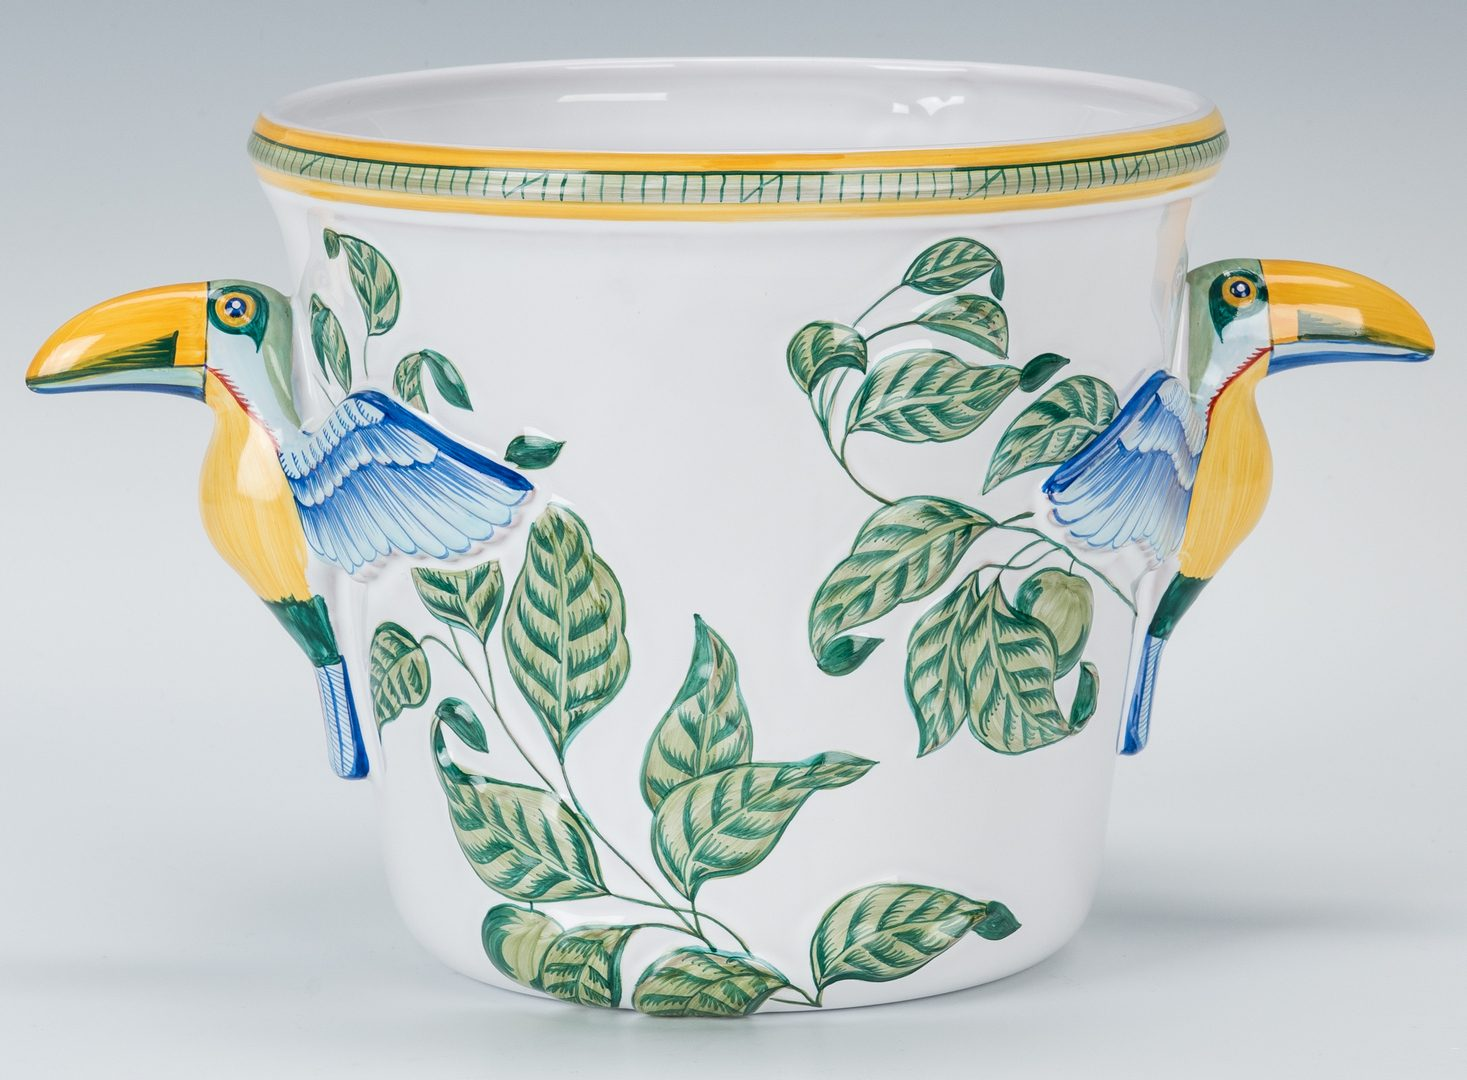 Lot 262: 13 Hermes Moustiers Faience Toucans Pattern Porcelain Items